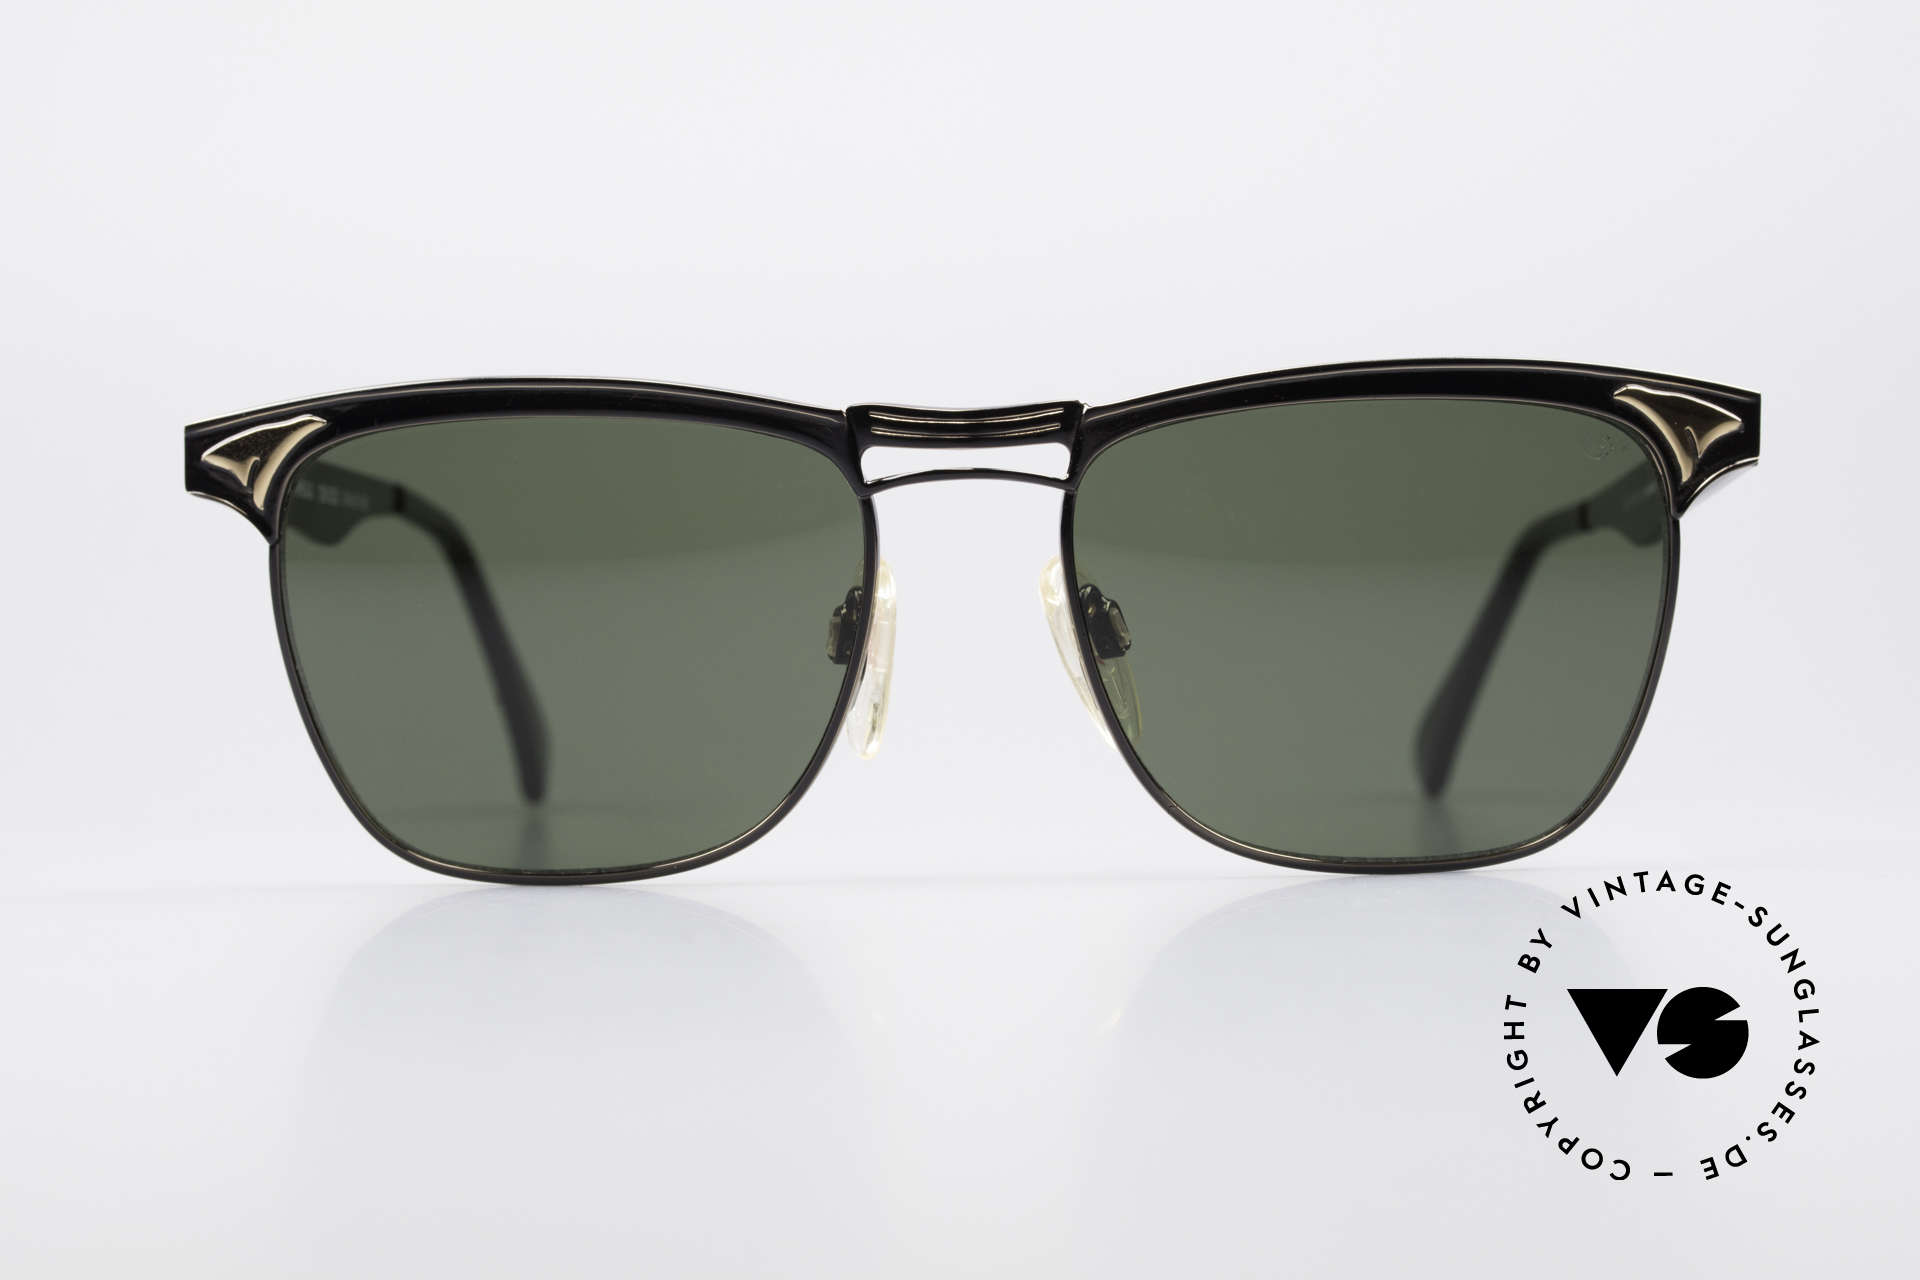 Alpina THE SPEARHEAD No Retro Sunglasses 1990's, 1st class wearing comfort due to spring hinges, Made for Men and Women